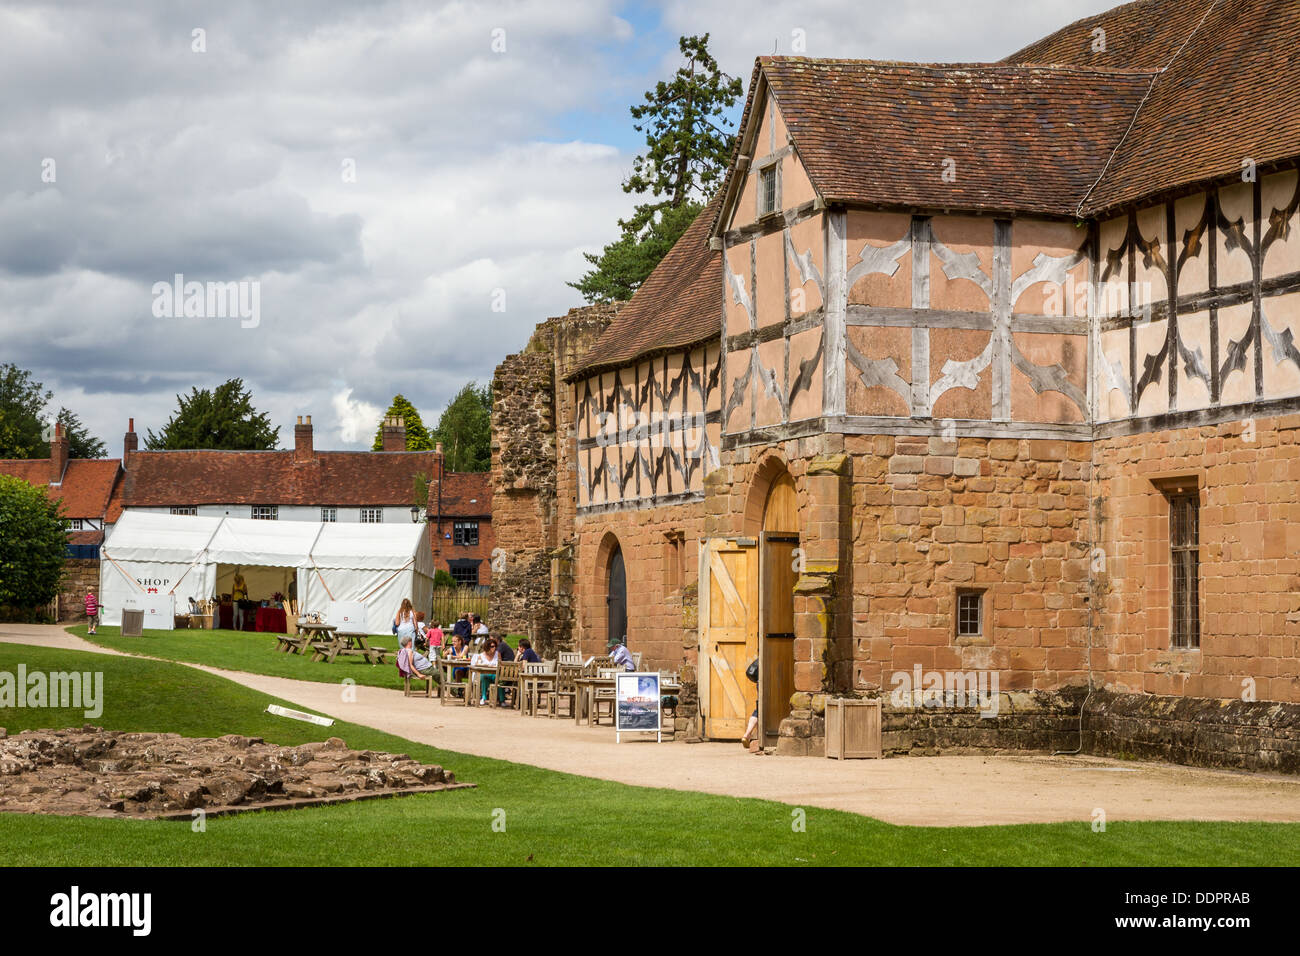 The stables and tearoom at Kenilworth Castle, Warwickshire, England. - Stock Image